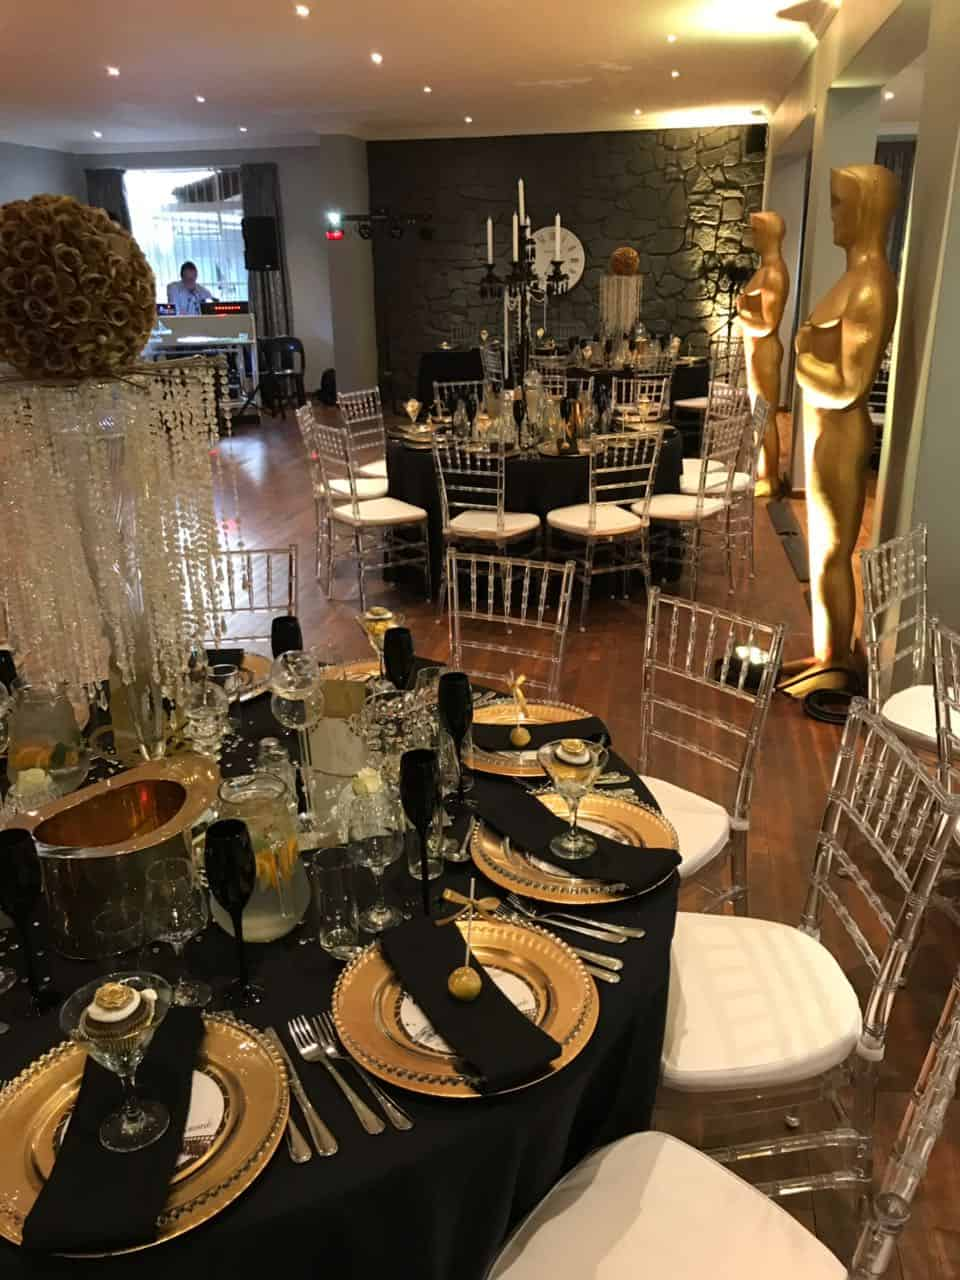 oscar party with satues and gold plates